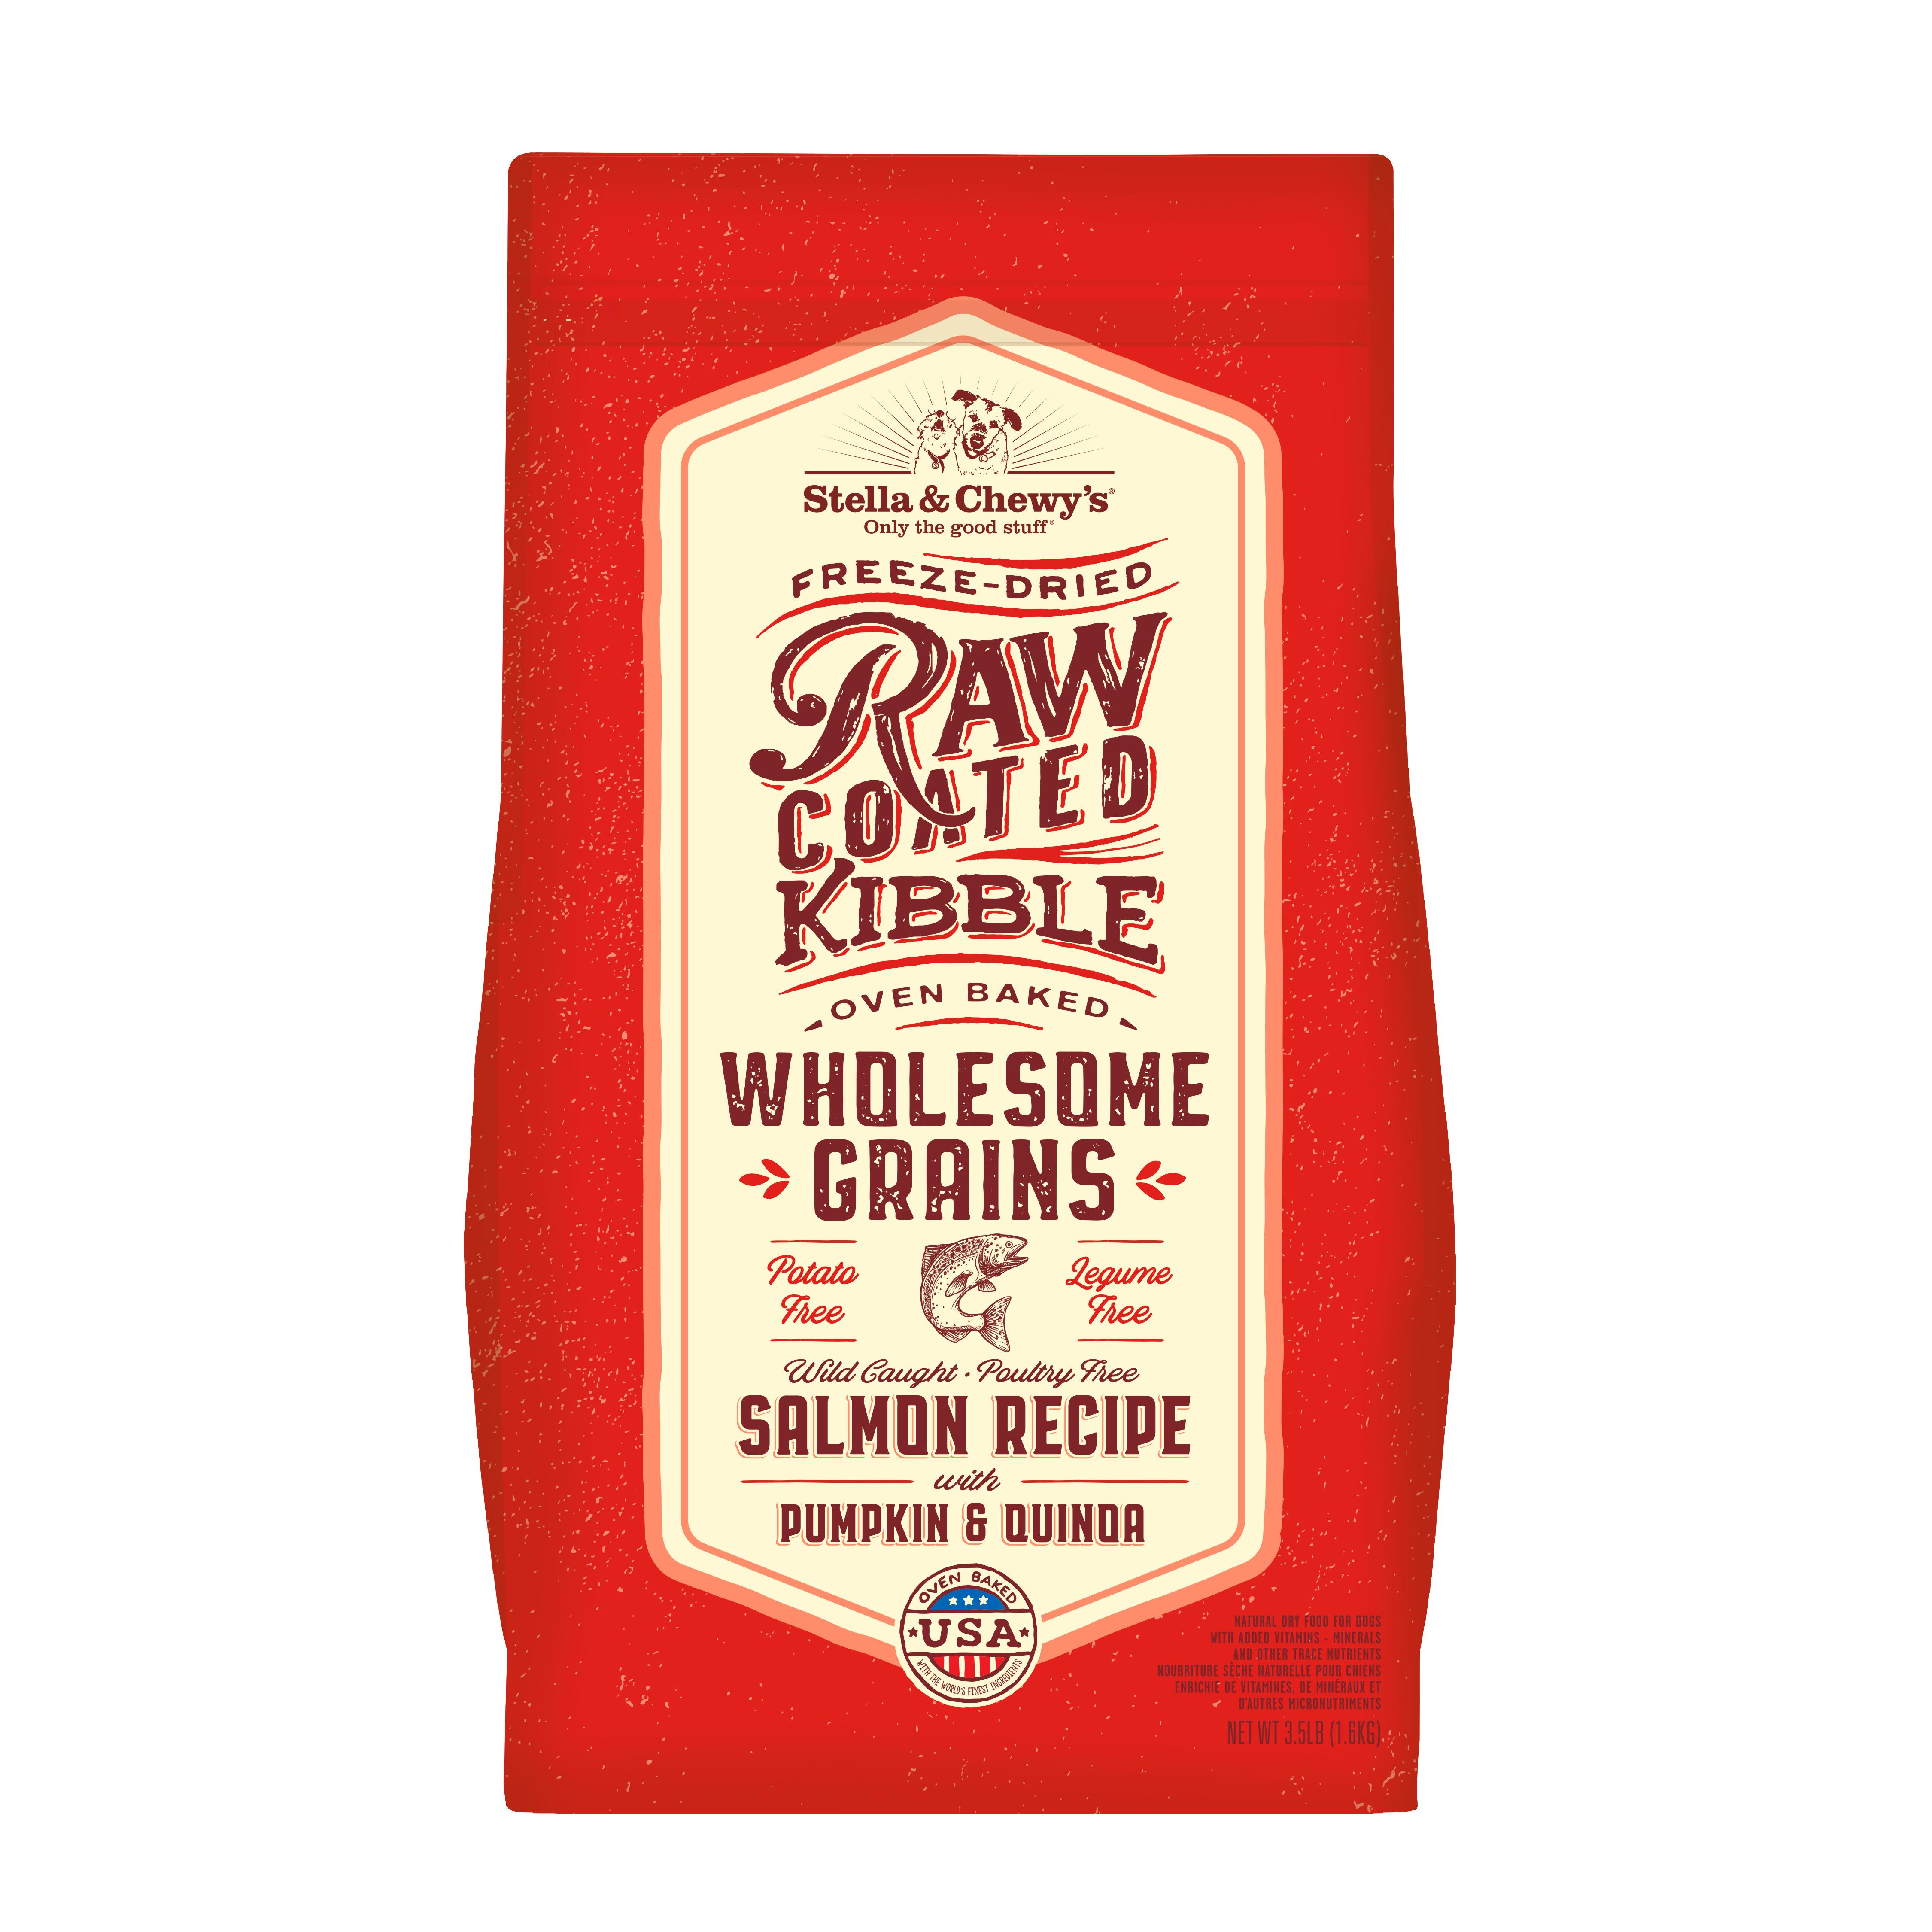 Stella & Chewy's Raw Coated Kibble Wholesome Grains Salmon, Pumpkin & Quinoa Dry Dog Food, 3.5-lb